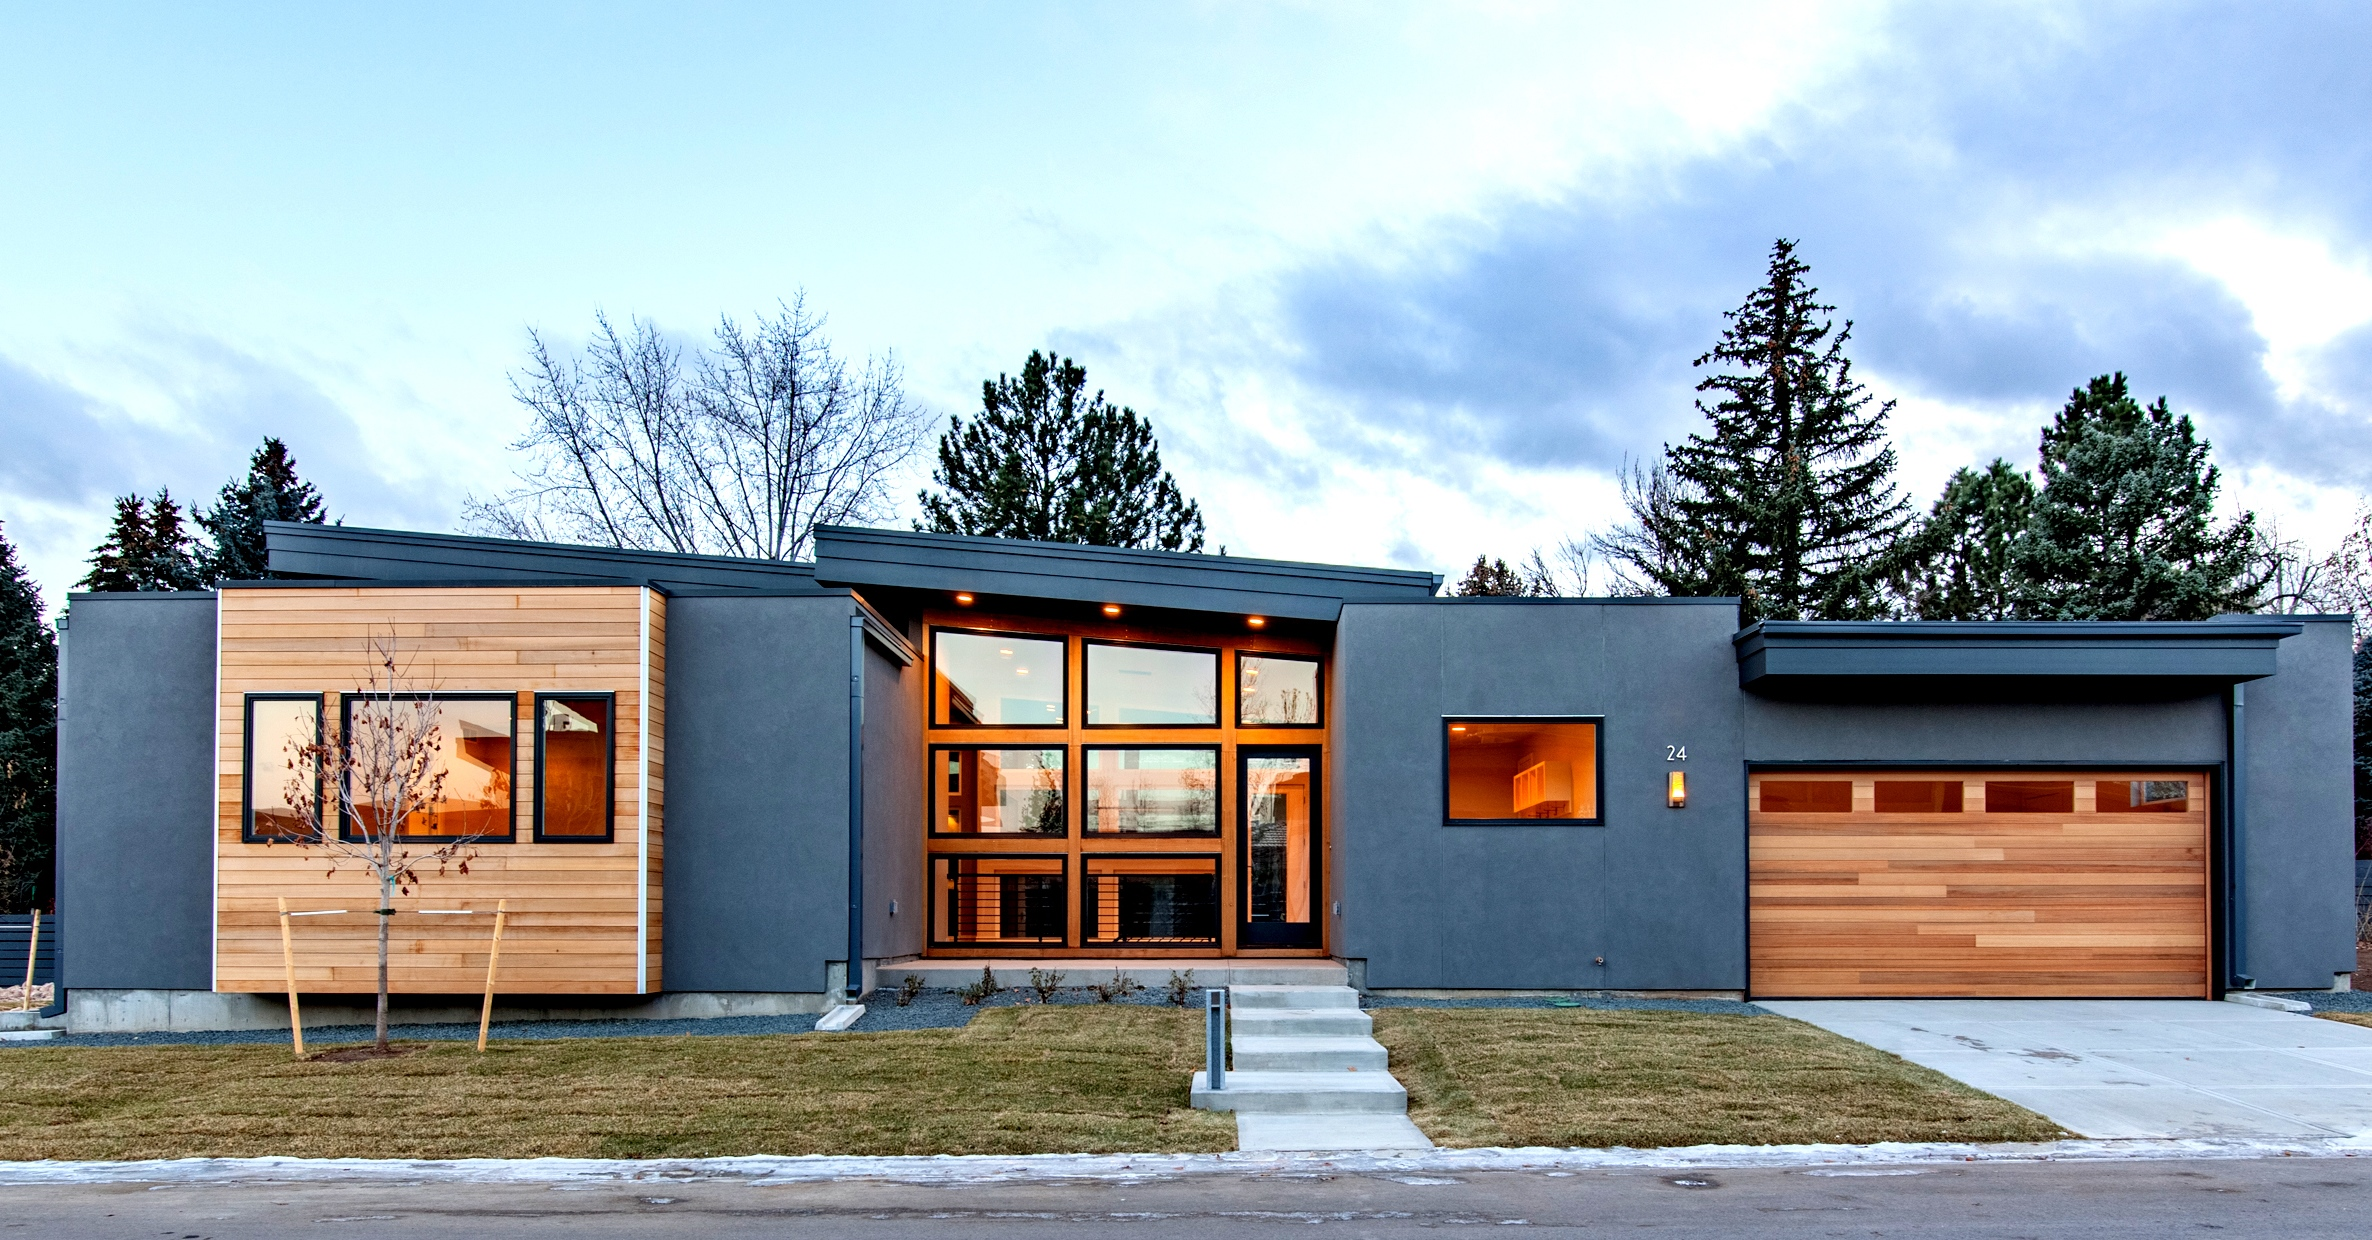 Modern architecture home design studio gunn denver for Contemporary architecture